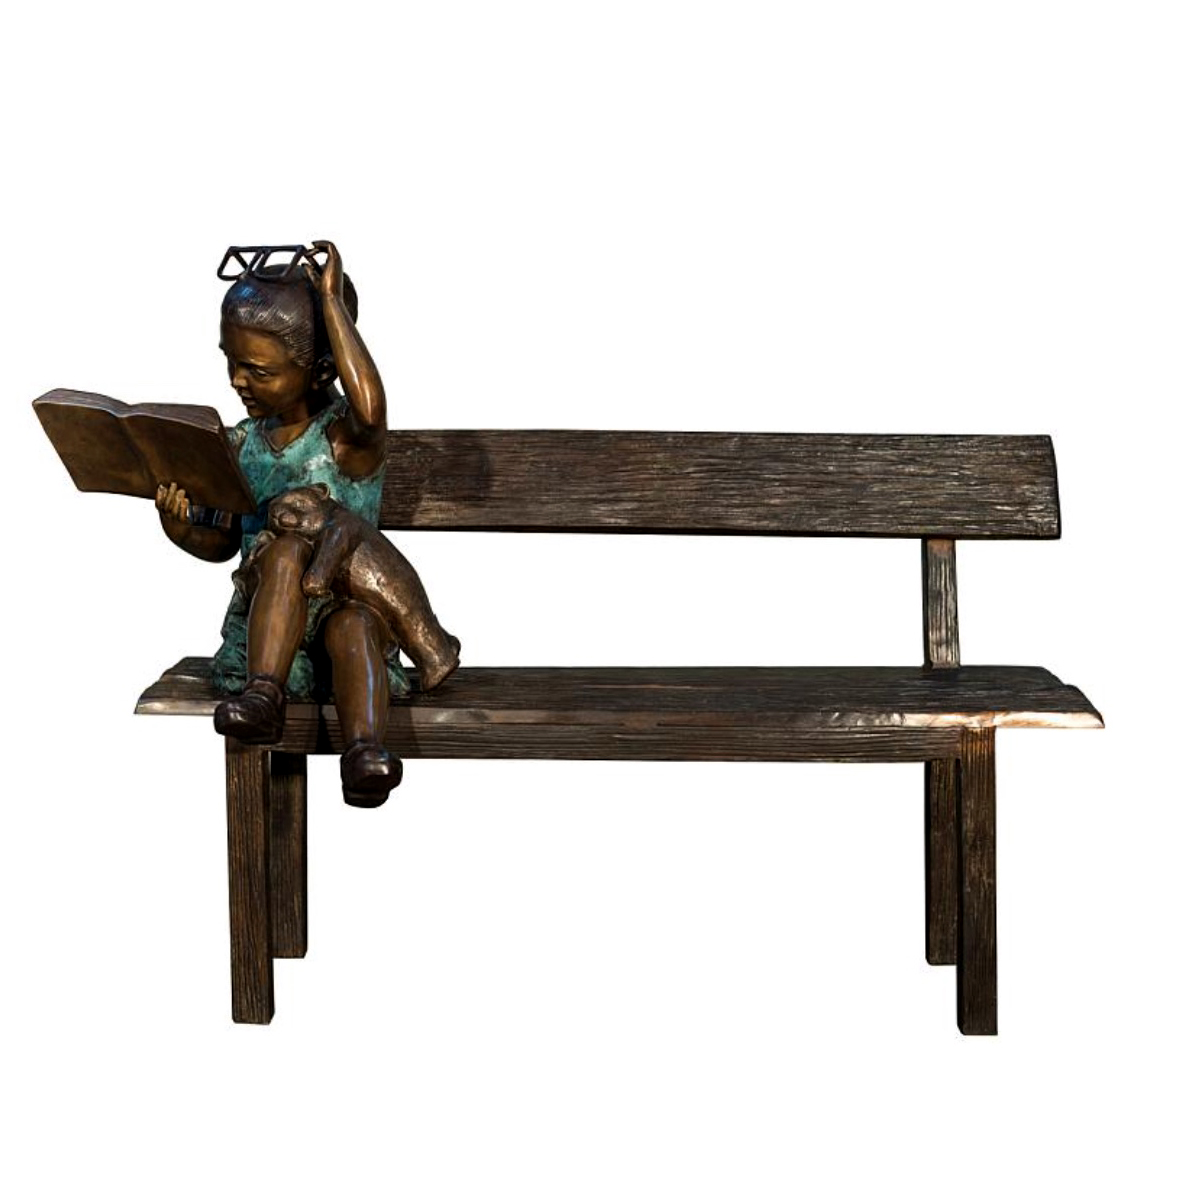 SRB097134 Bronze Girl Reading Book on Bench Sculpture Metropolitan Galleries Inc.